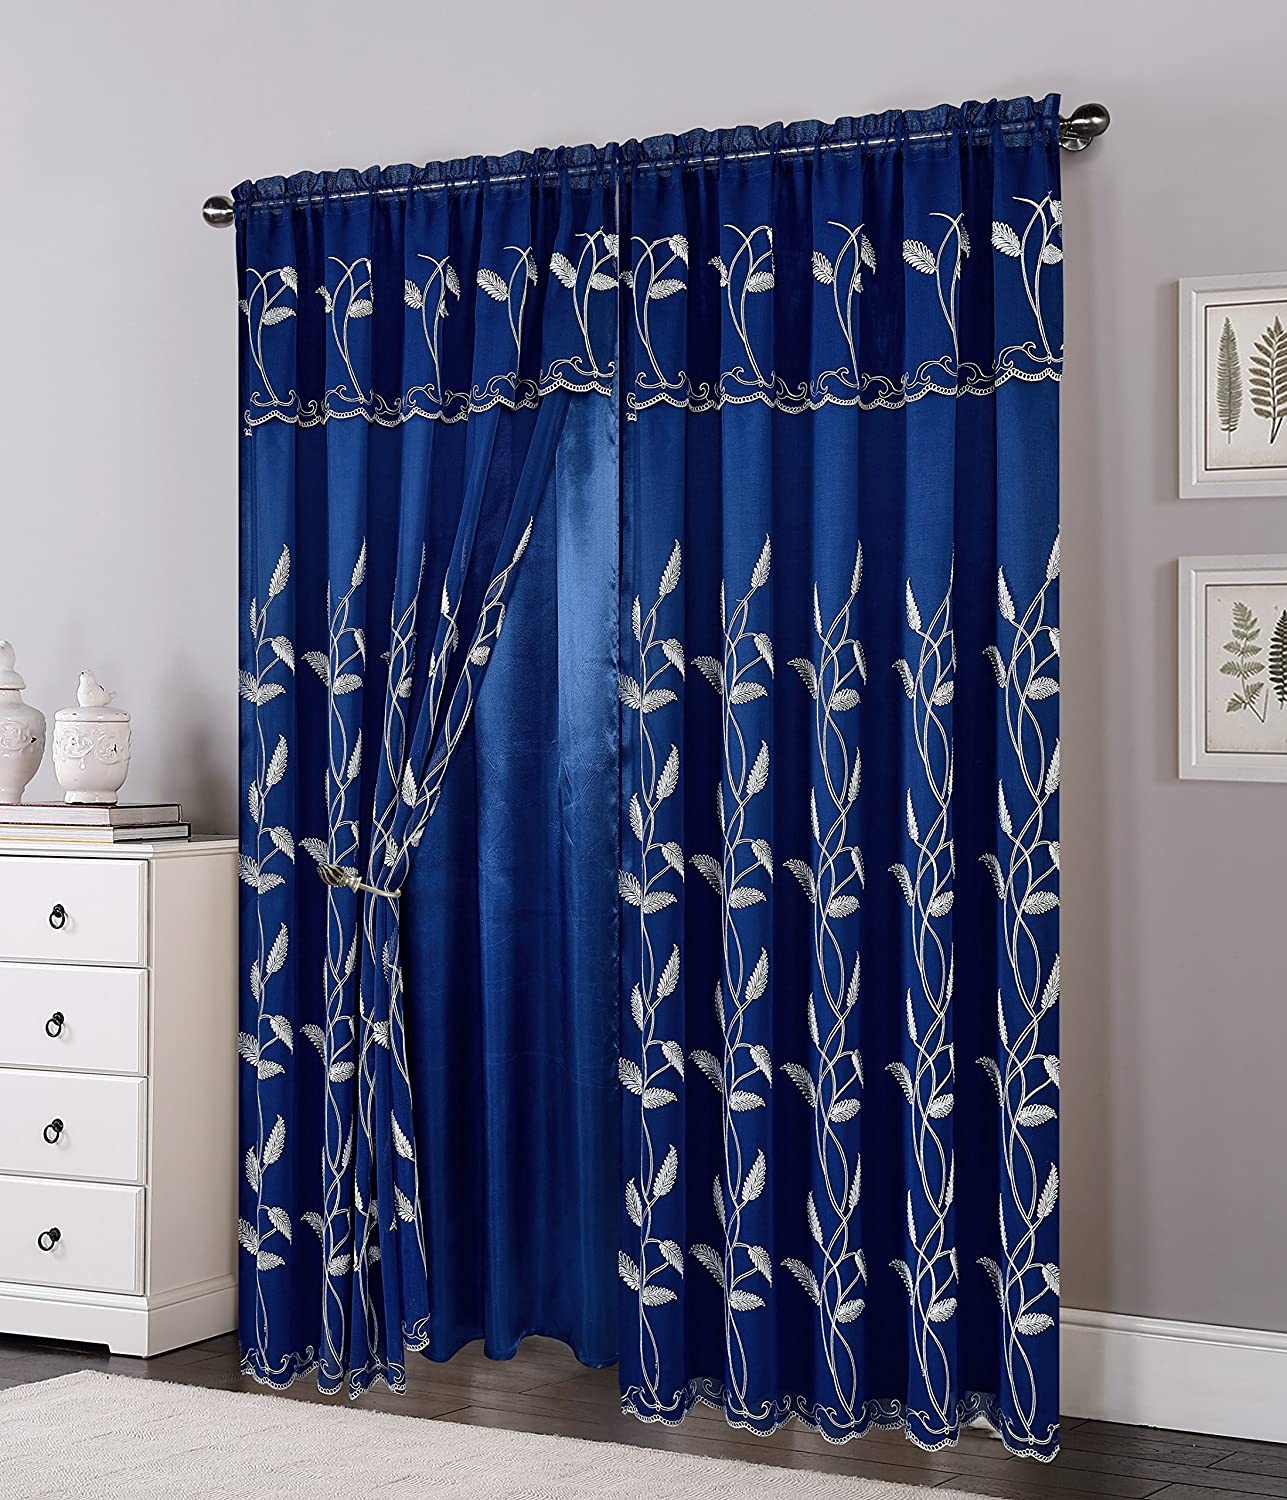 Elegant Comfort Luxurious Beautiful Curtain Panel Set with Attached Valance and Backing Navy Blue